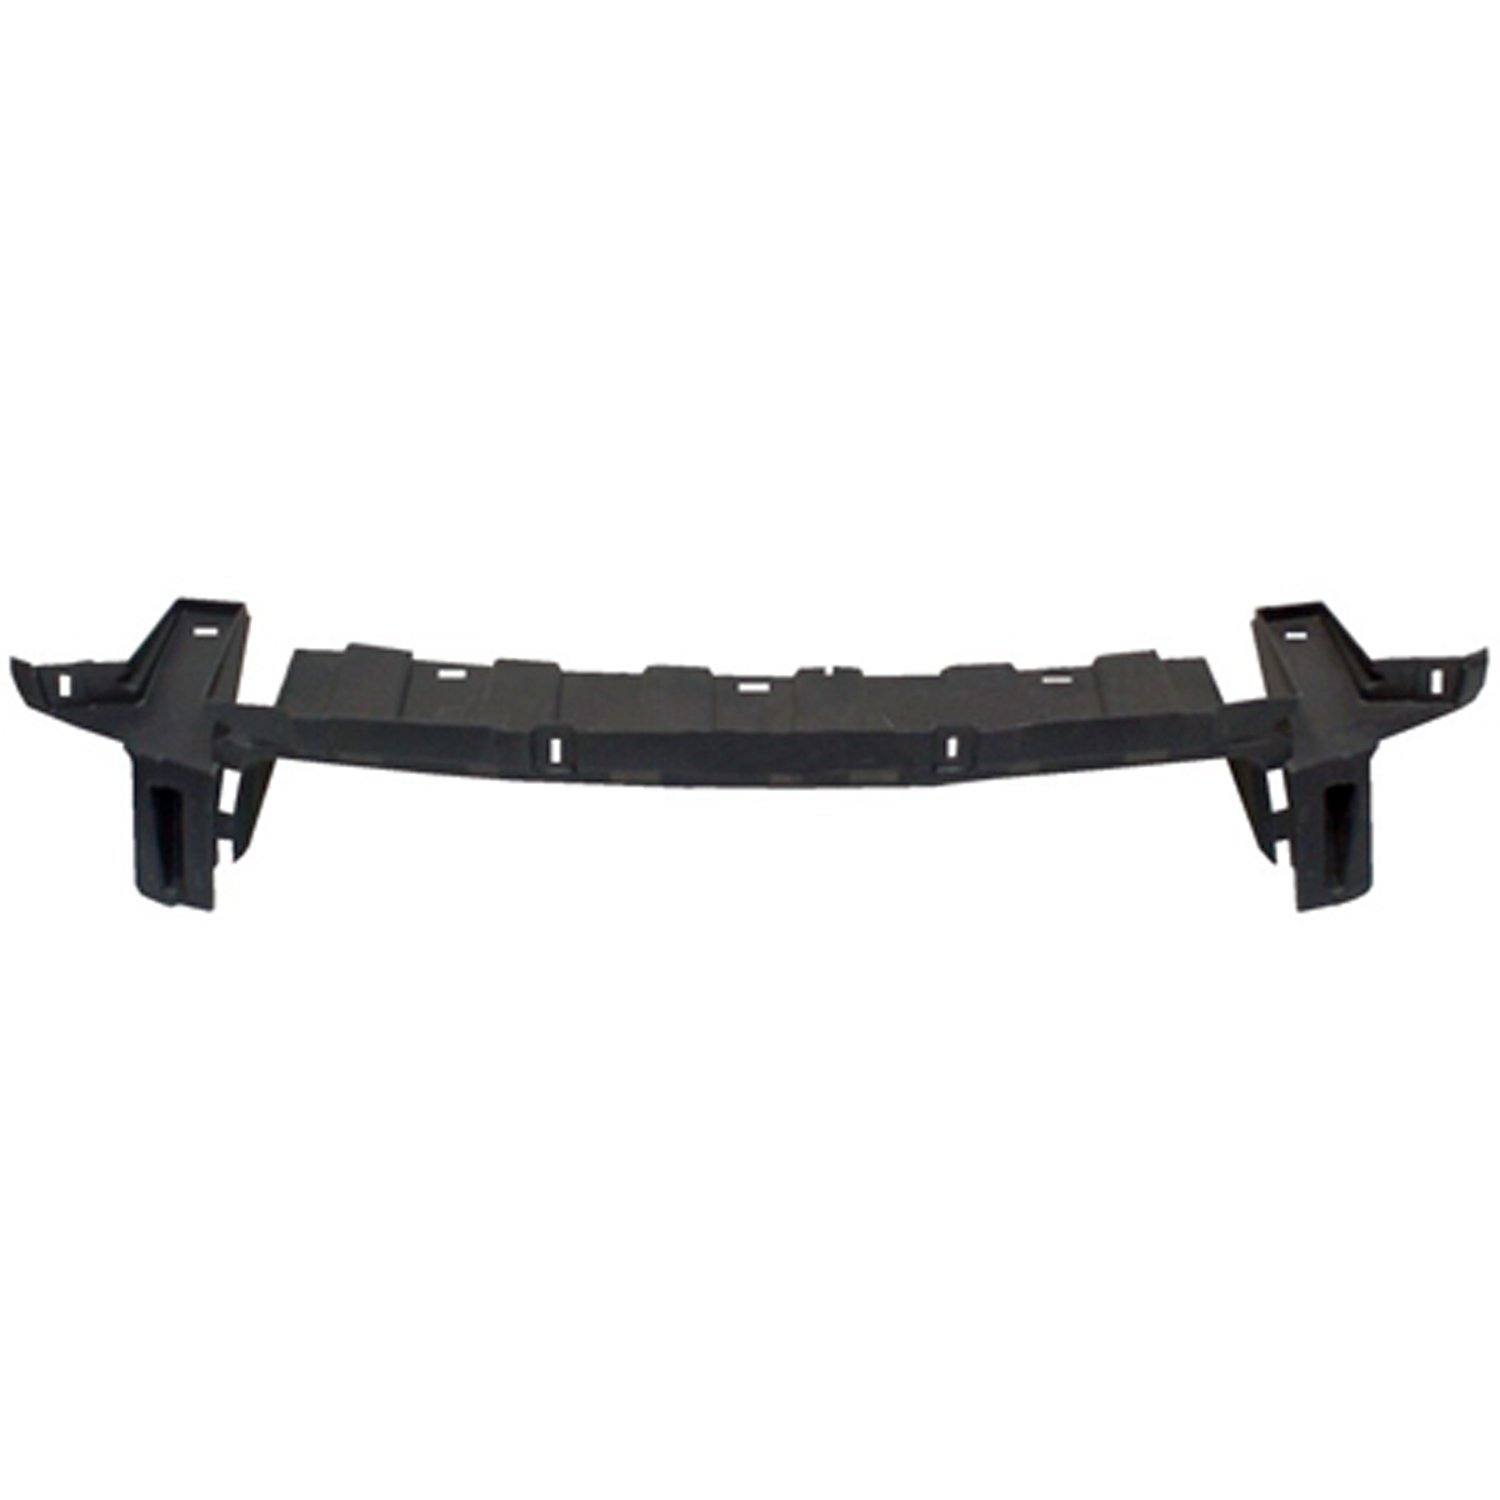 Crash Parts Plus Crash Parts Plus Front Bumper Cover Support for 2008-2010 Jeep Grand Cherokee